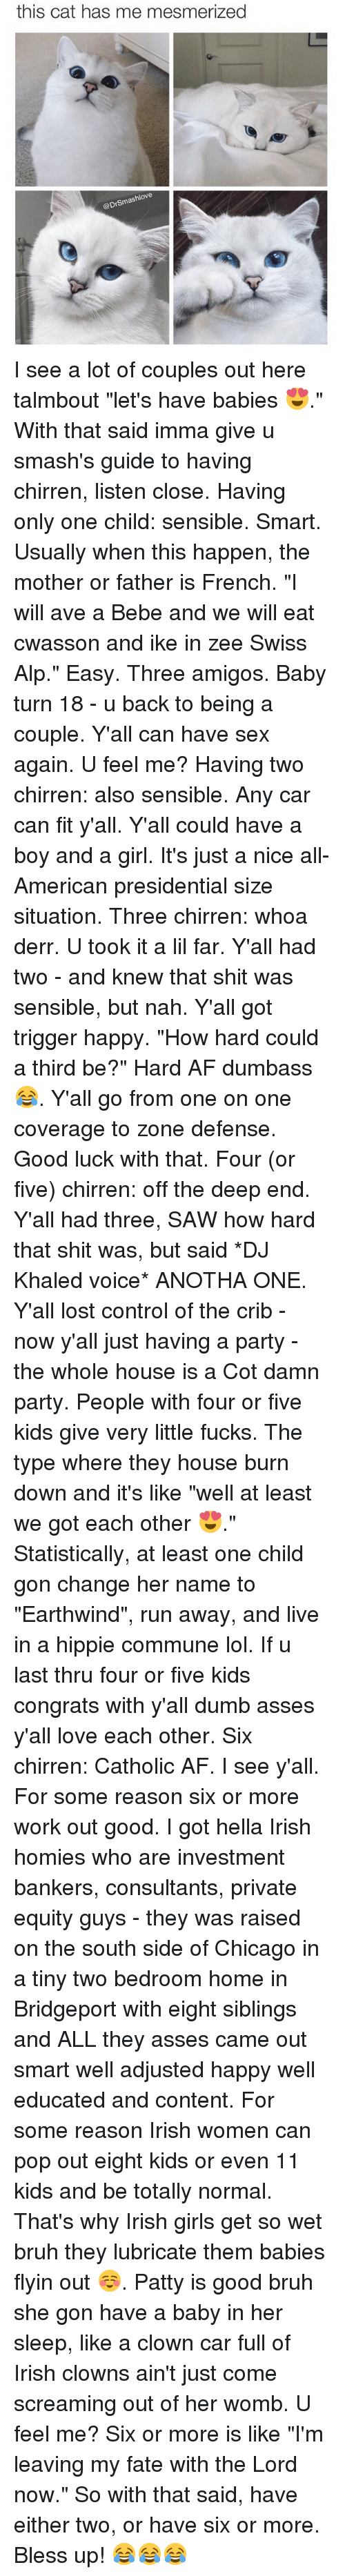 """the deep end: this cat has me mesmerized  @DrSmashlove I see a lot of couples out here talmbout """"let's have babies 😍."""" With that said imma give u smash's guide to having chirren, listen close. Having only one child: sensible. Smart. Usually when this happen, the mother or father is French. """"I will ave a Bebe and we will eat cwasson and ike in zee Swiss Alp."""" Easy. Three amigos. Baby turn 18 - u back to being a couple. Y'all can have sex again. U feel me? Having two chirren: also sensible. Any car can fit y'all. Y'all could have a boy and a girl. It's just a nice all-American presidential size situation. Three chirren: whoa derr. U took it a lil far. Y'all had two - and knew that shit was sensible, but nah. Y'all got trigger happy. """"How hard could a third be?"""" Hard AF dumbass 😂. Y'all go from one on one coverage to zone defense. Good luck with that. Four (or five) chirren: off the deep end. Y'all had three, SAW how hard that shit was, but said *DJ Khaled voice* ANOTHA ONE. Y'all lost control of the crib - now y'all just having a party - the whole house is a Cot damn party. People with four or five kids give very little fucks. The type where they house burn down and it's like """"well at least we got each other 😍."""" Statistically, at least one child gon change her name to """"Earthwind"""", run away, and live in a hippie commune lol. If u last thru four or five kids congrats with y'all dumb asses y'all love each other. Six chirren: Catholic AF. I see y'all. For some reason six or more work out good. I got hella Irish homies who are investment bankers, consultants, private equity guys - they was raised on the south side of Chicago in a tiny two bedroom home in Bridgeport with eight siblings and ALL they asses came out smart well adjusted happy well educated and content. For some reason Irish women can pop out eight kids or even 11 kids and be totally normal. That's why Irish girls get so wet bruh they lubricate them babies flyin out ☺️. Patty is good bruh she gon have a baby in """